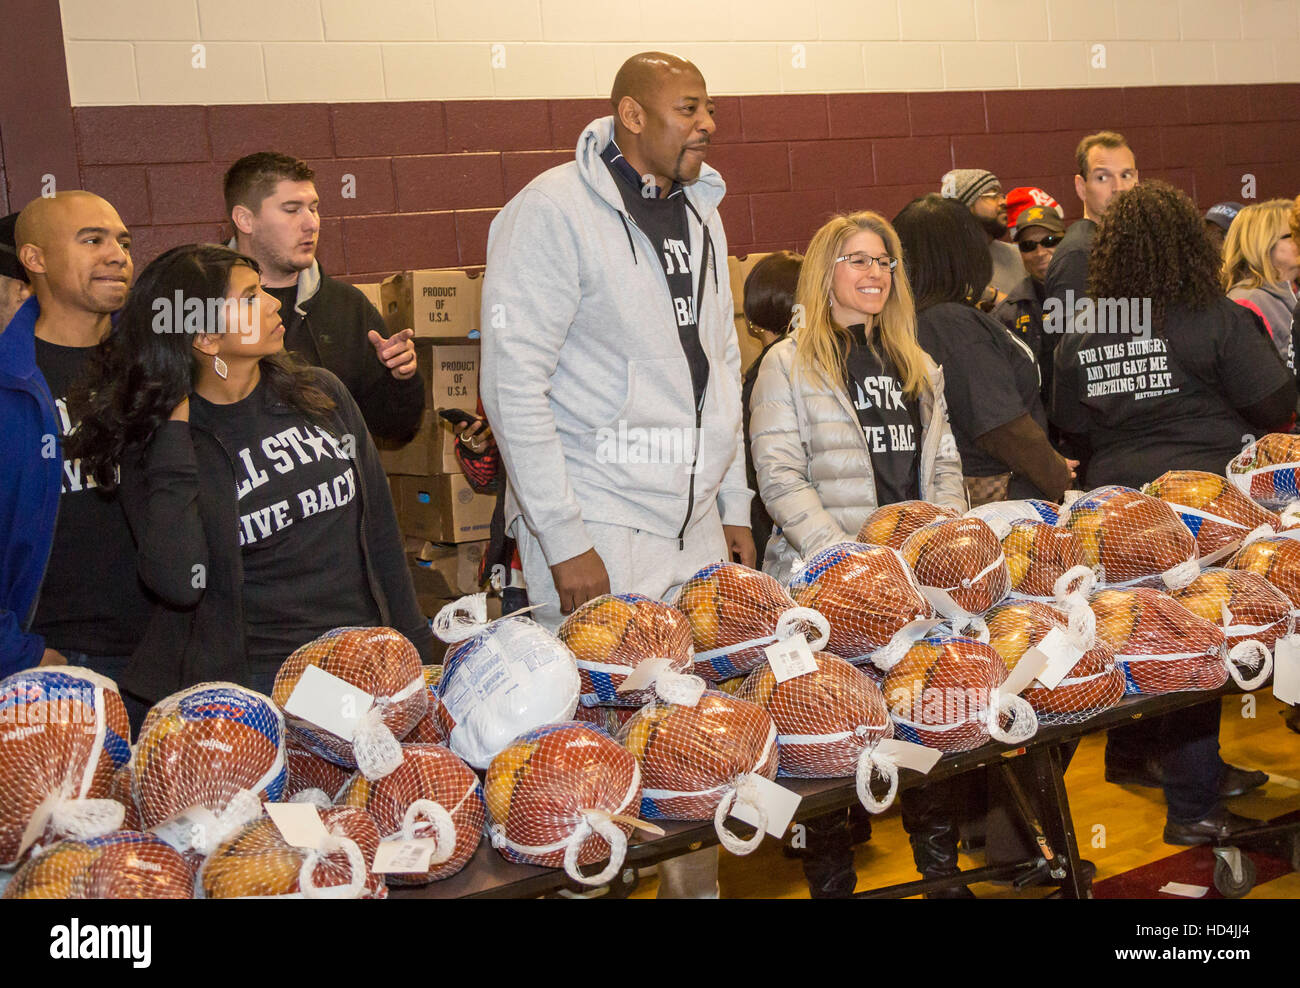 River Rouge, Michigan - Amateur and professional athletes join in the annual All-Star Giveback free turkey distribution. - Stock Image